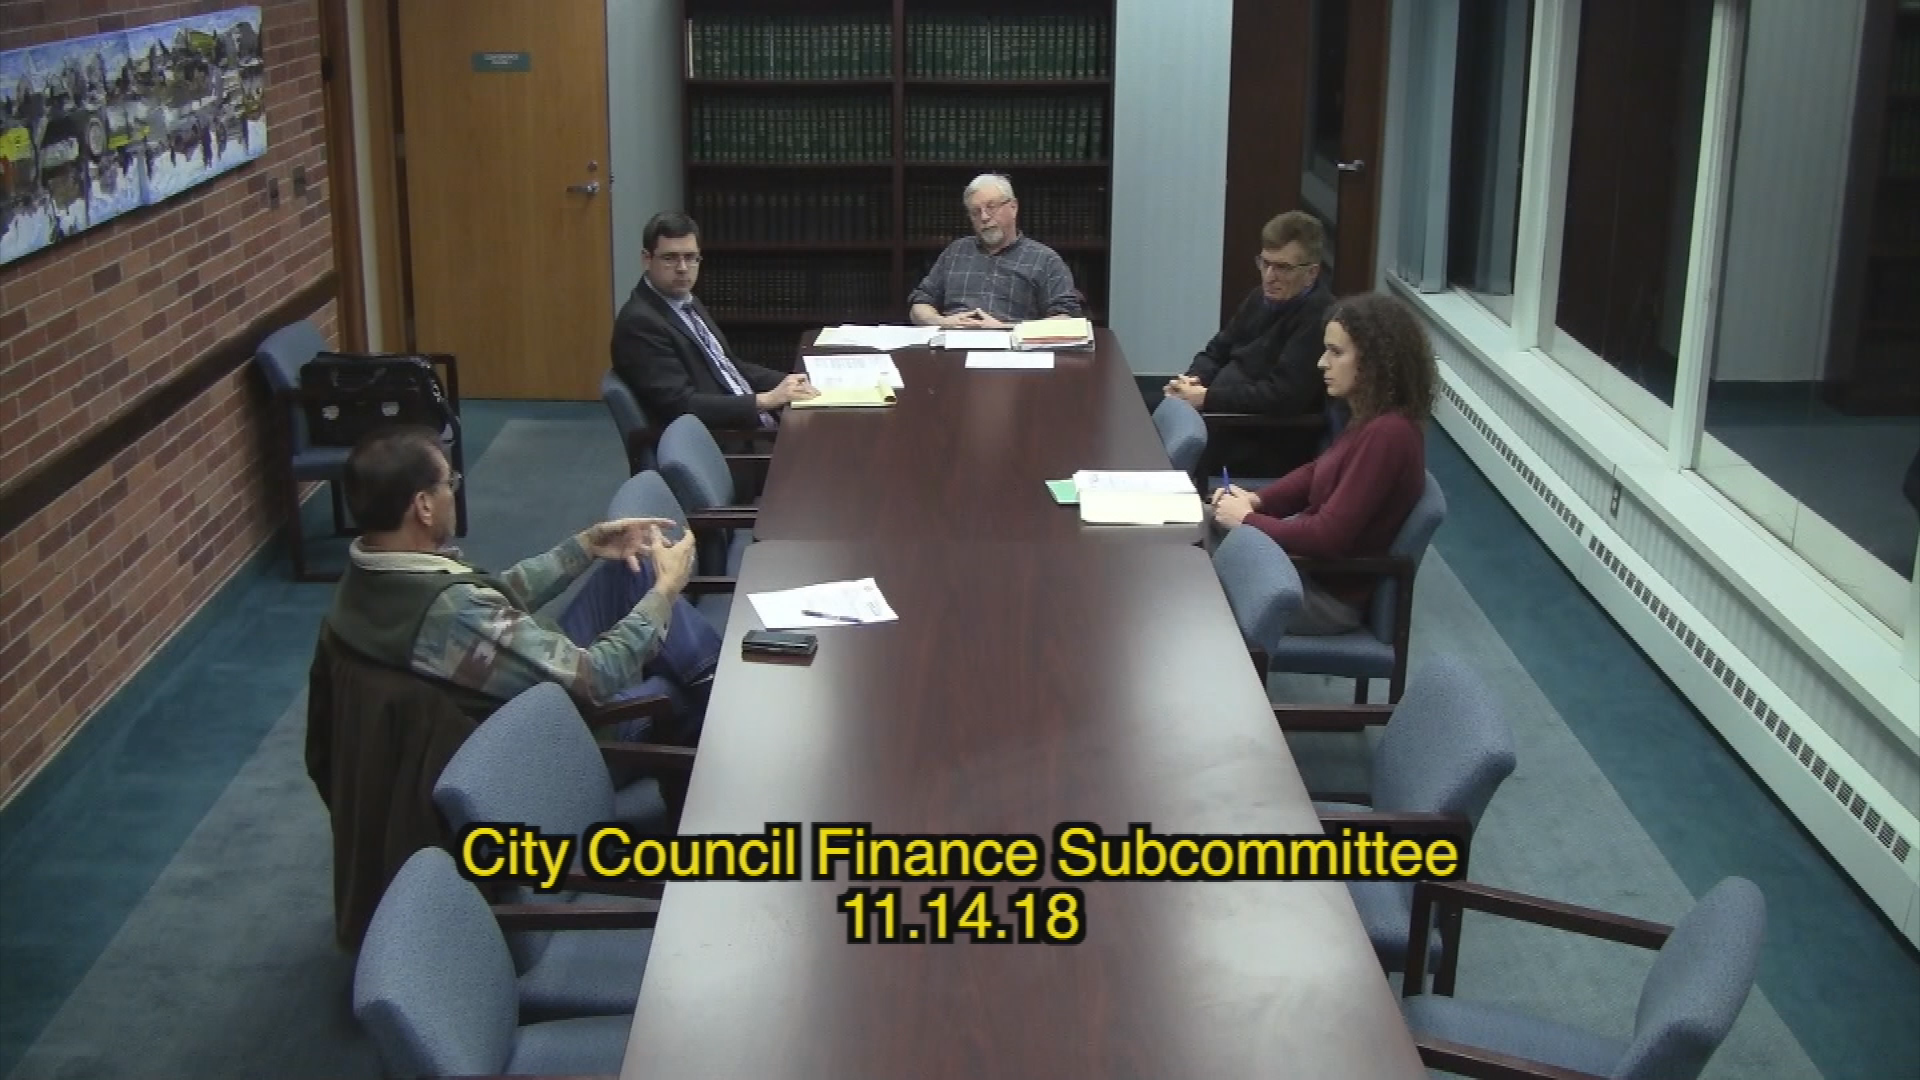 City Council Finance Subcommittee 11.14.18